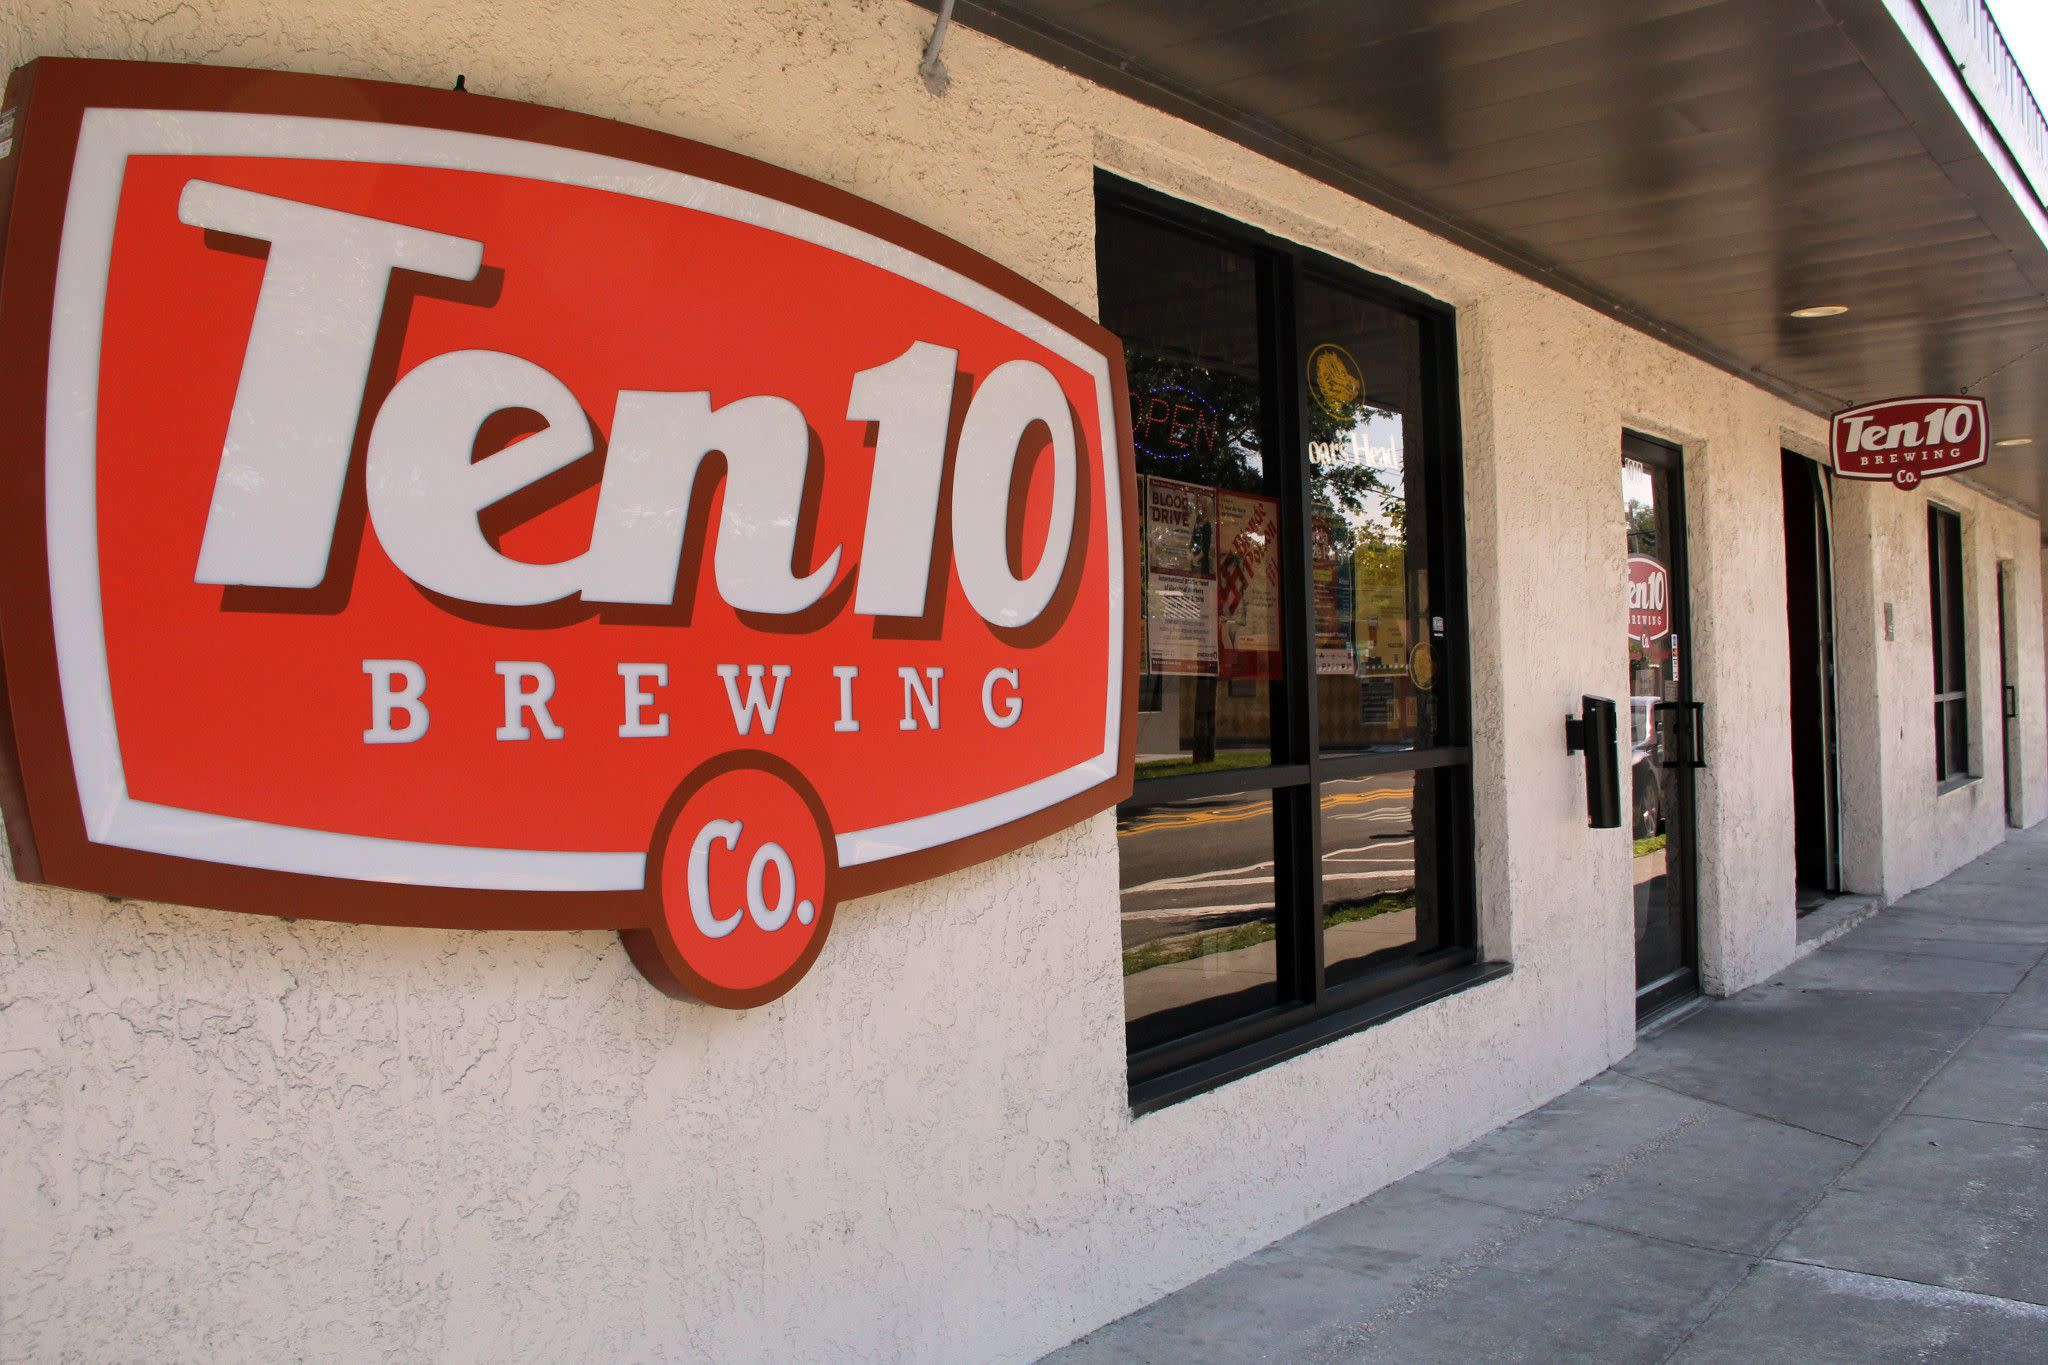 Ten10 Brewing Company in Orlando